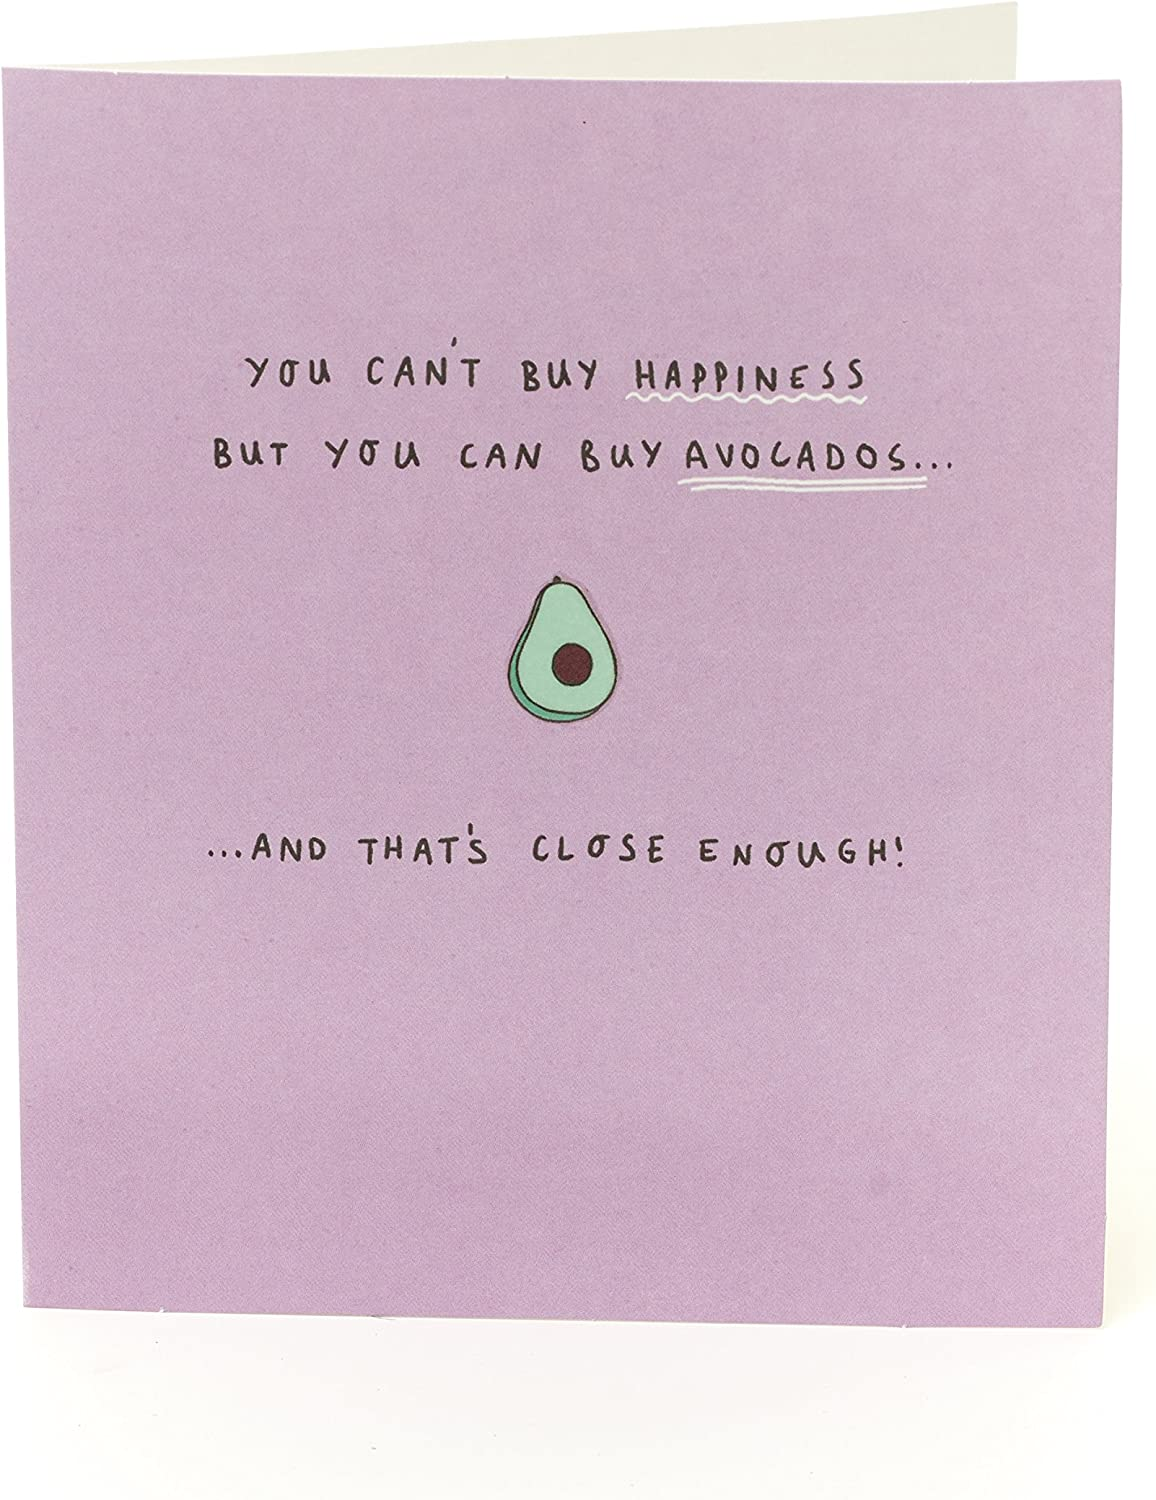 Amazon Com Birthday Card For Her Funny Birthday Card Friend Female Funny Gifts For Her Ideal Gift Card For Her Gifts For Women Funny Gifts Avacado Joke Office Products